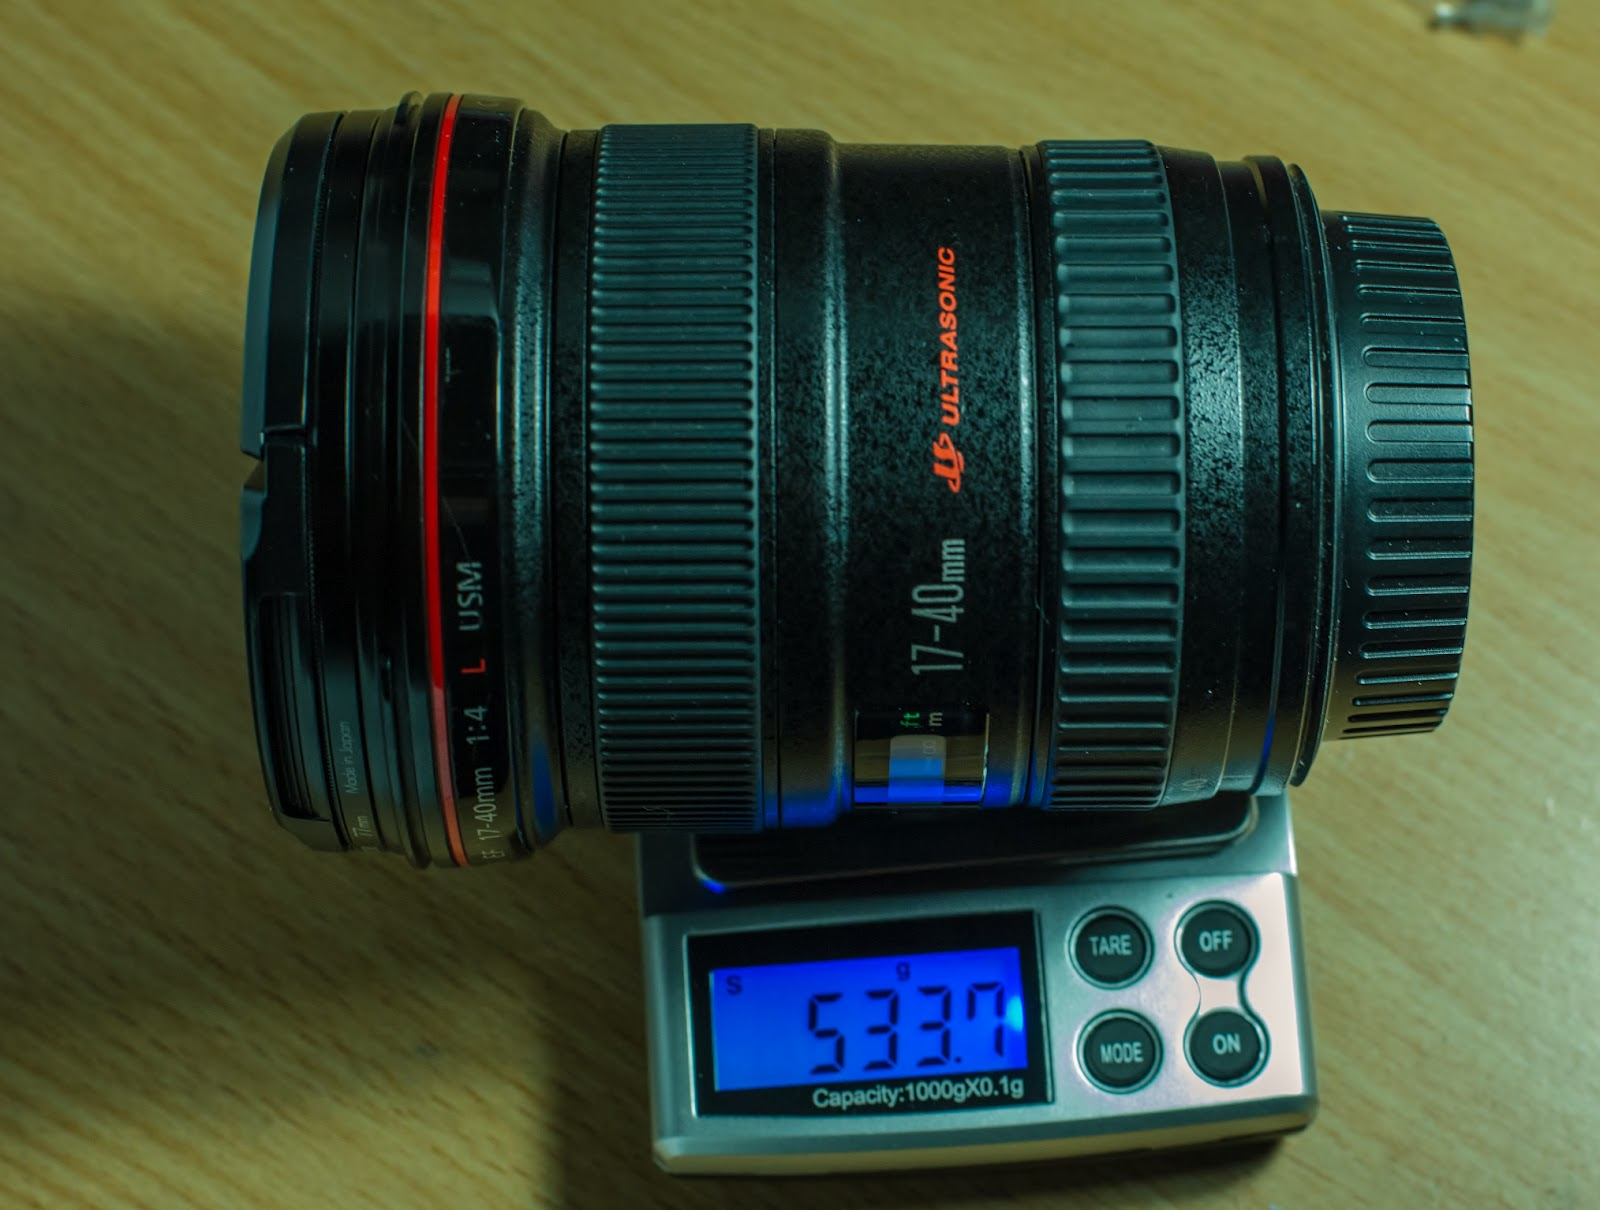 Canon 17-40mm EF f4L USM Weight